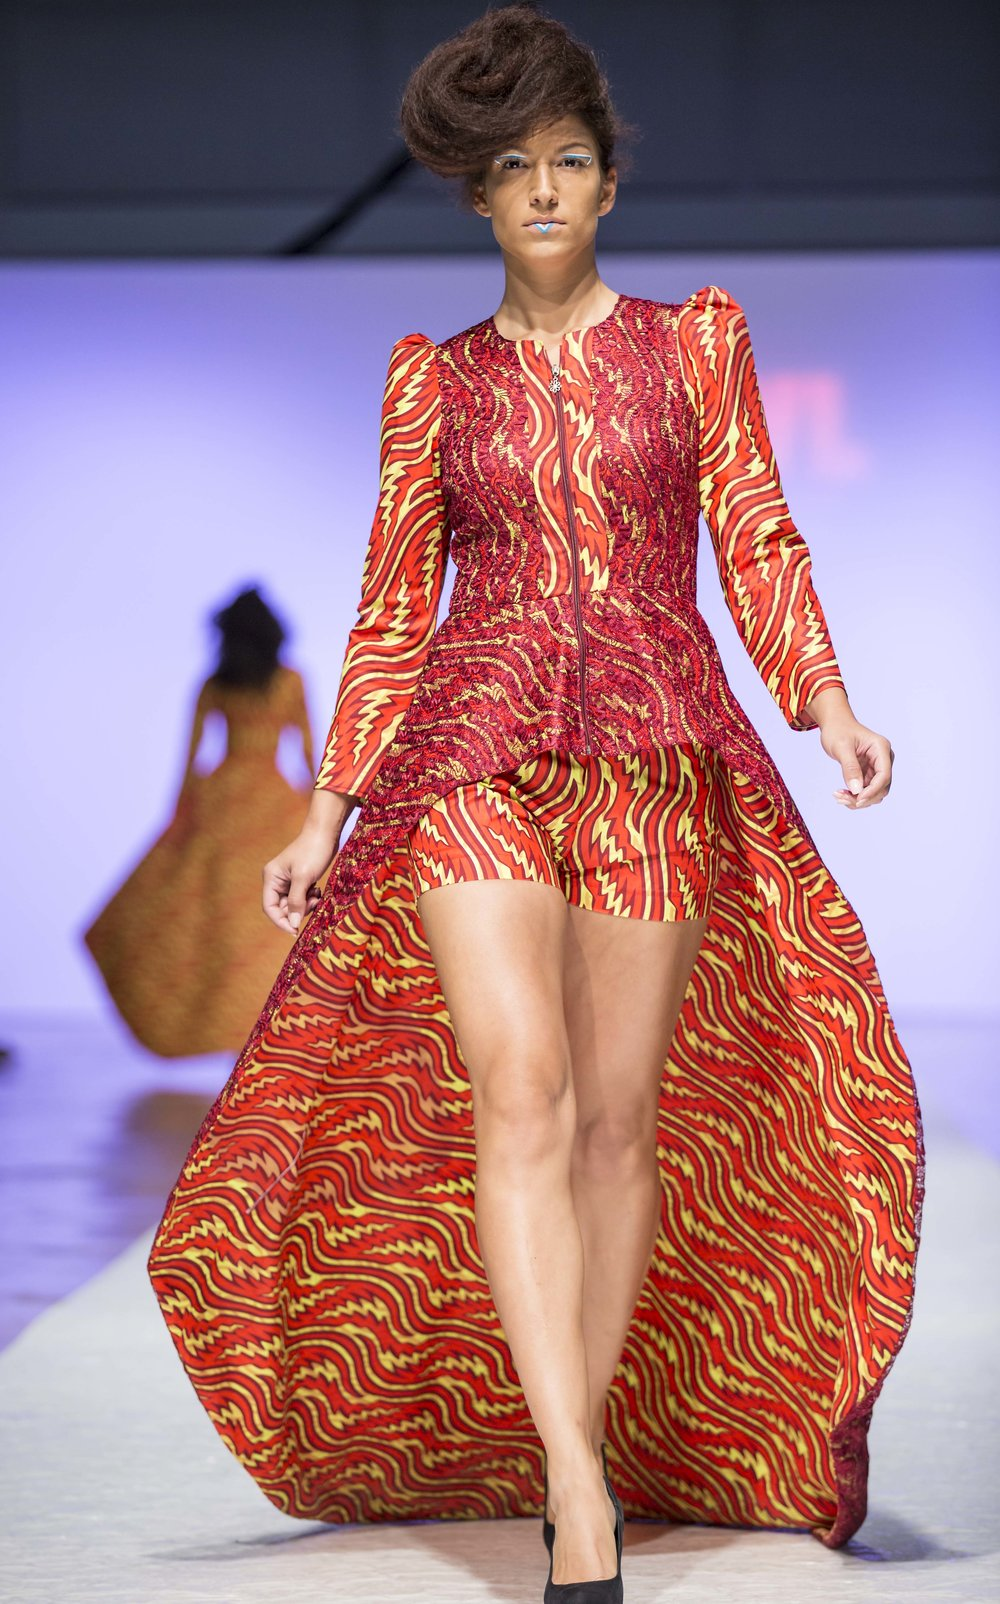 African Fashion Today-Joanna Mitroi Photography 0838 - lores - Copy.jpg